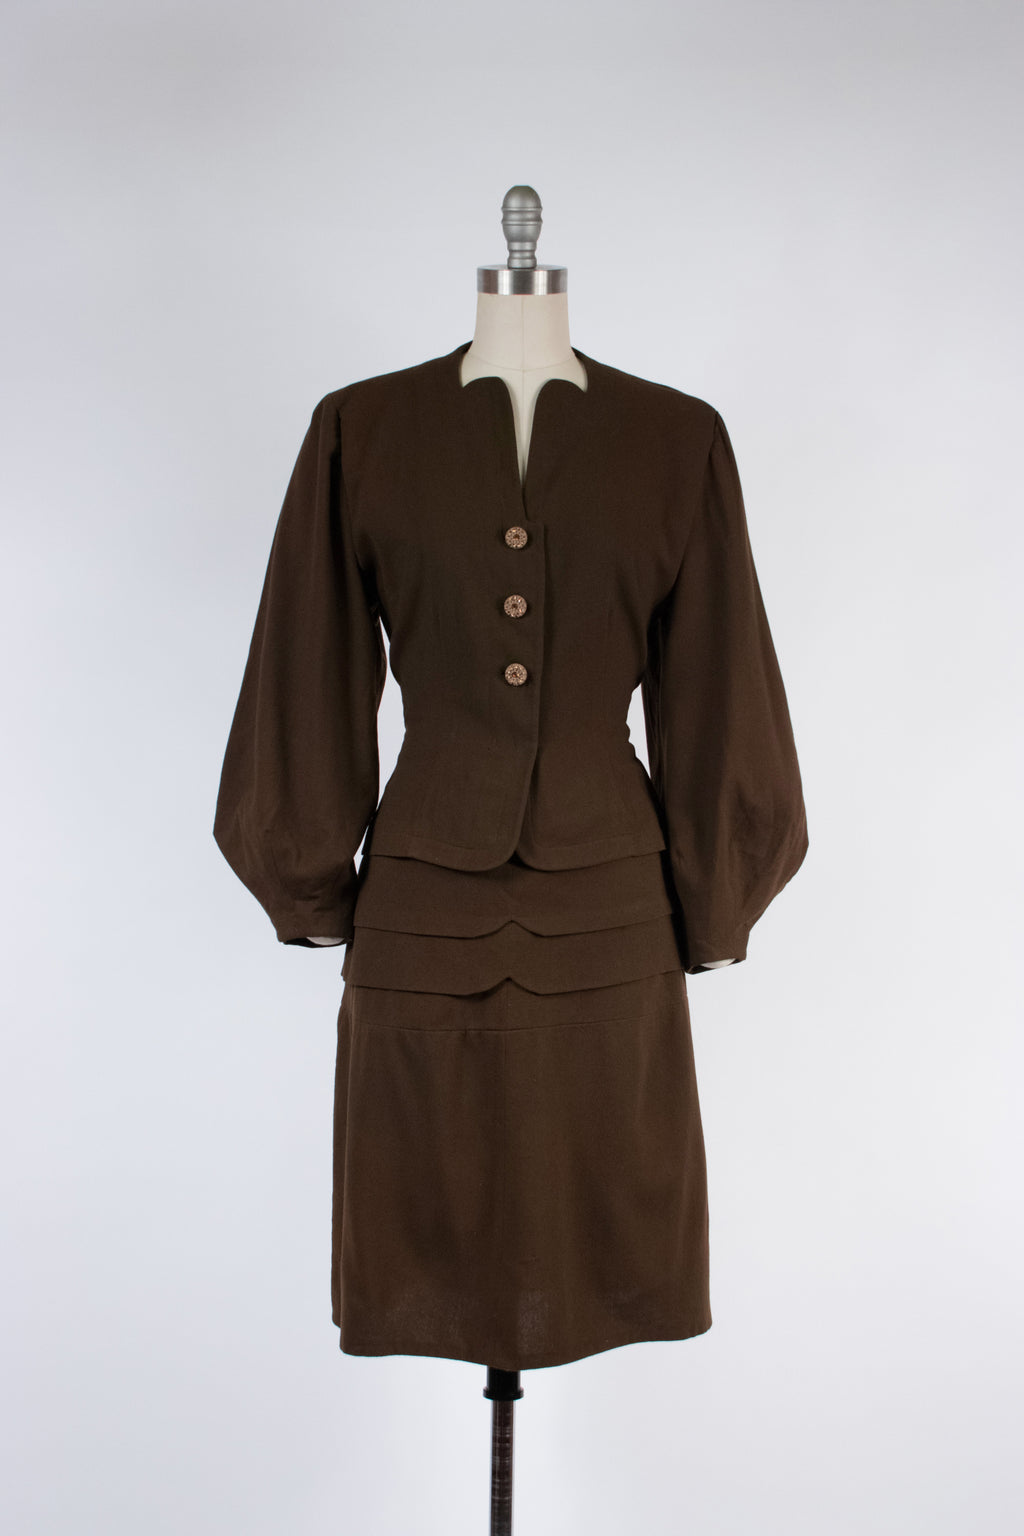 Layaway Deposit for Rare Late 1930s/Early 1940s Sally MILGRIM Wool Suit with Massive Lantern Sleeves